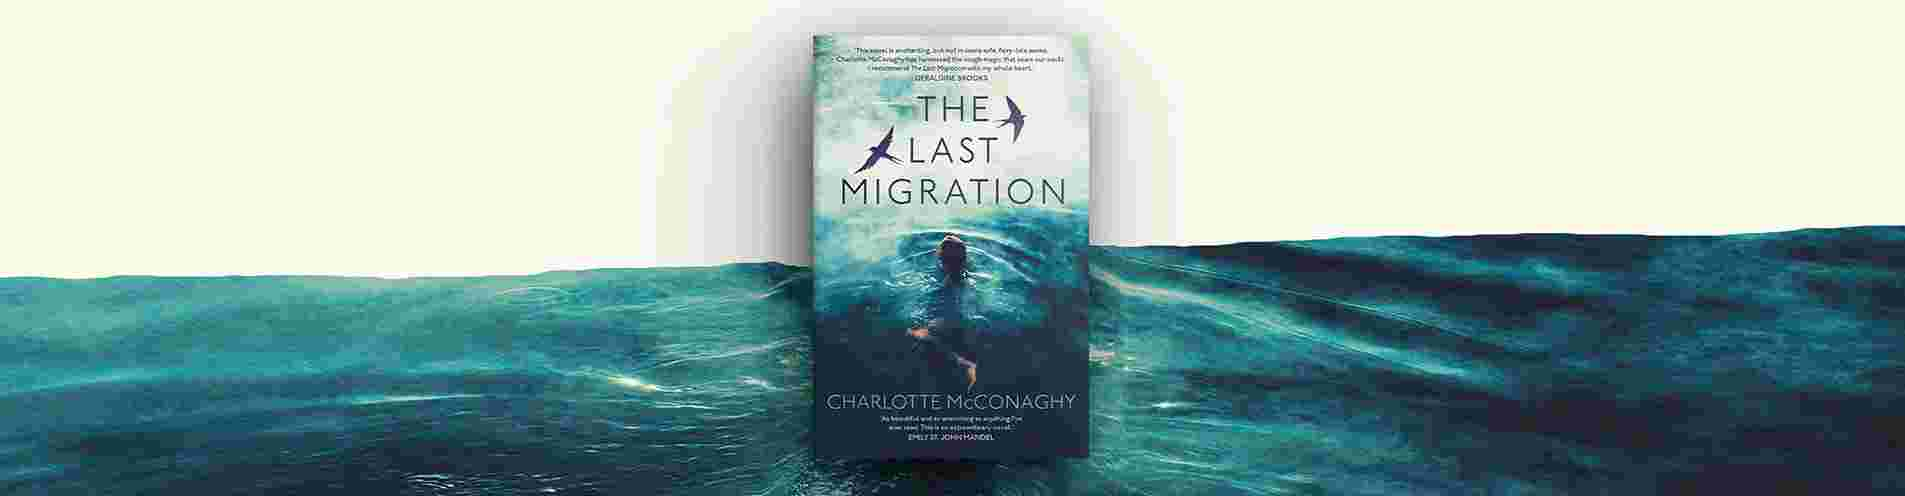 """Read an extract of """"The Last Migration"""" by Charlotte McConaghy header image"""